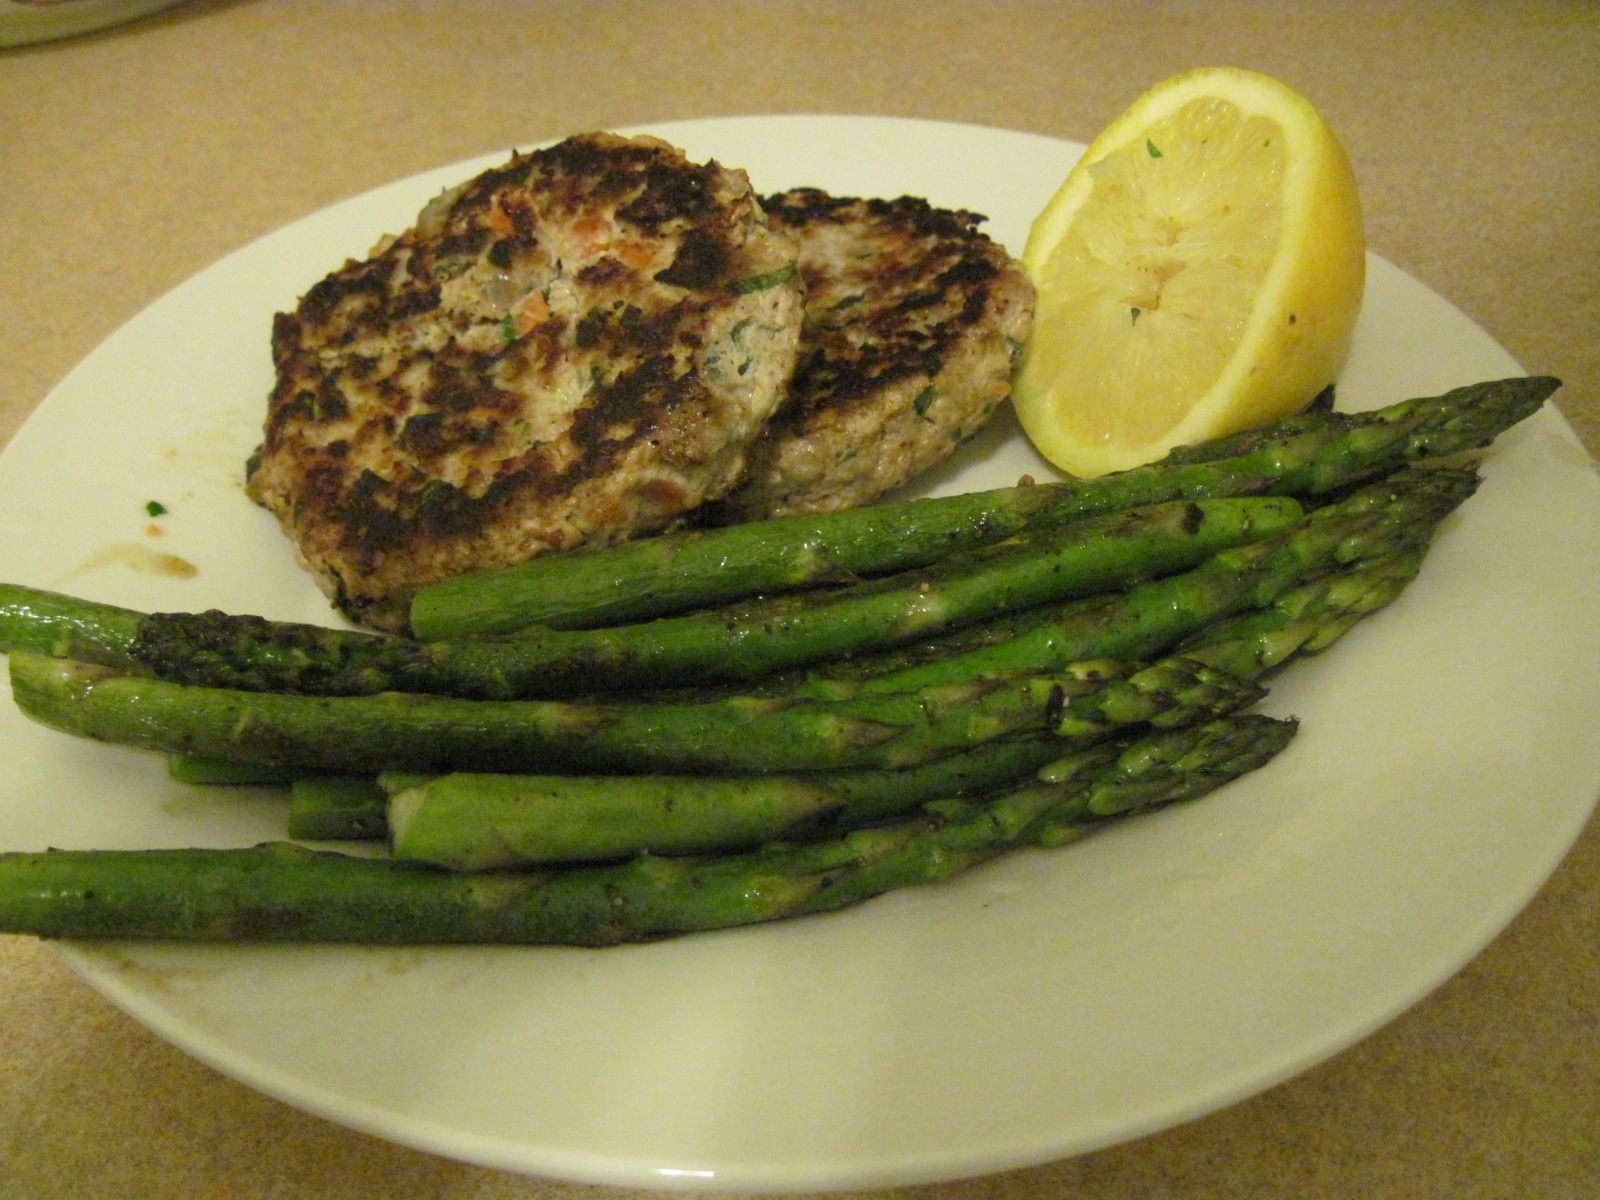 Easy recipe for SUPER yummy turkey burgers, with asparagus side.